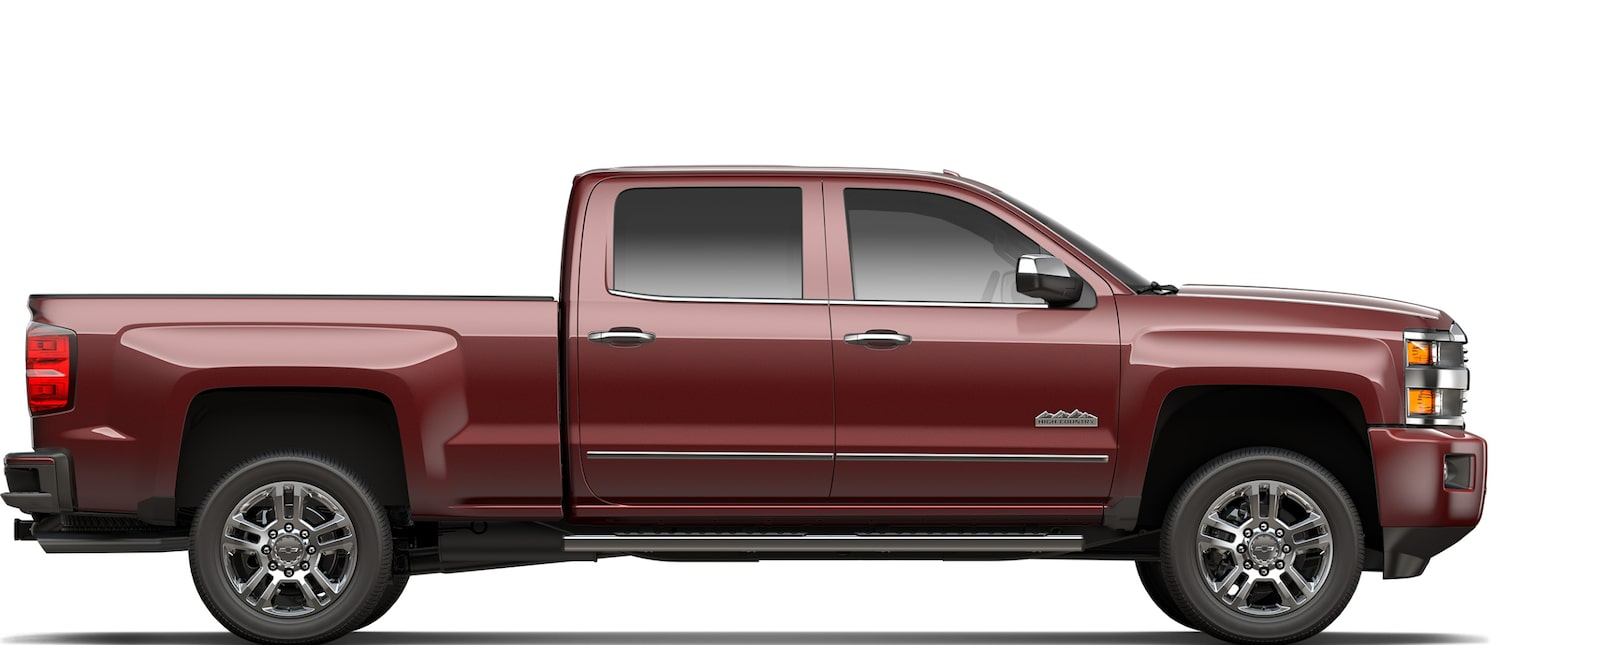 Truck chevy 2500hd trucks : 2017 Silverado 2500HD Heavy Duty Truck | Chevrolet